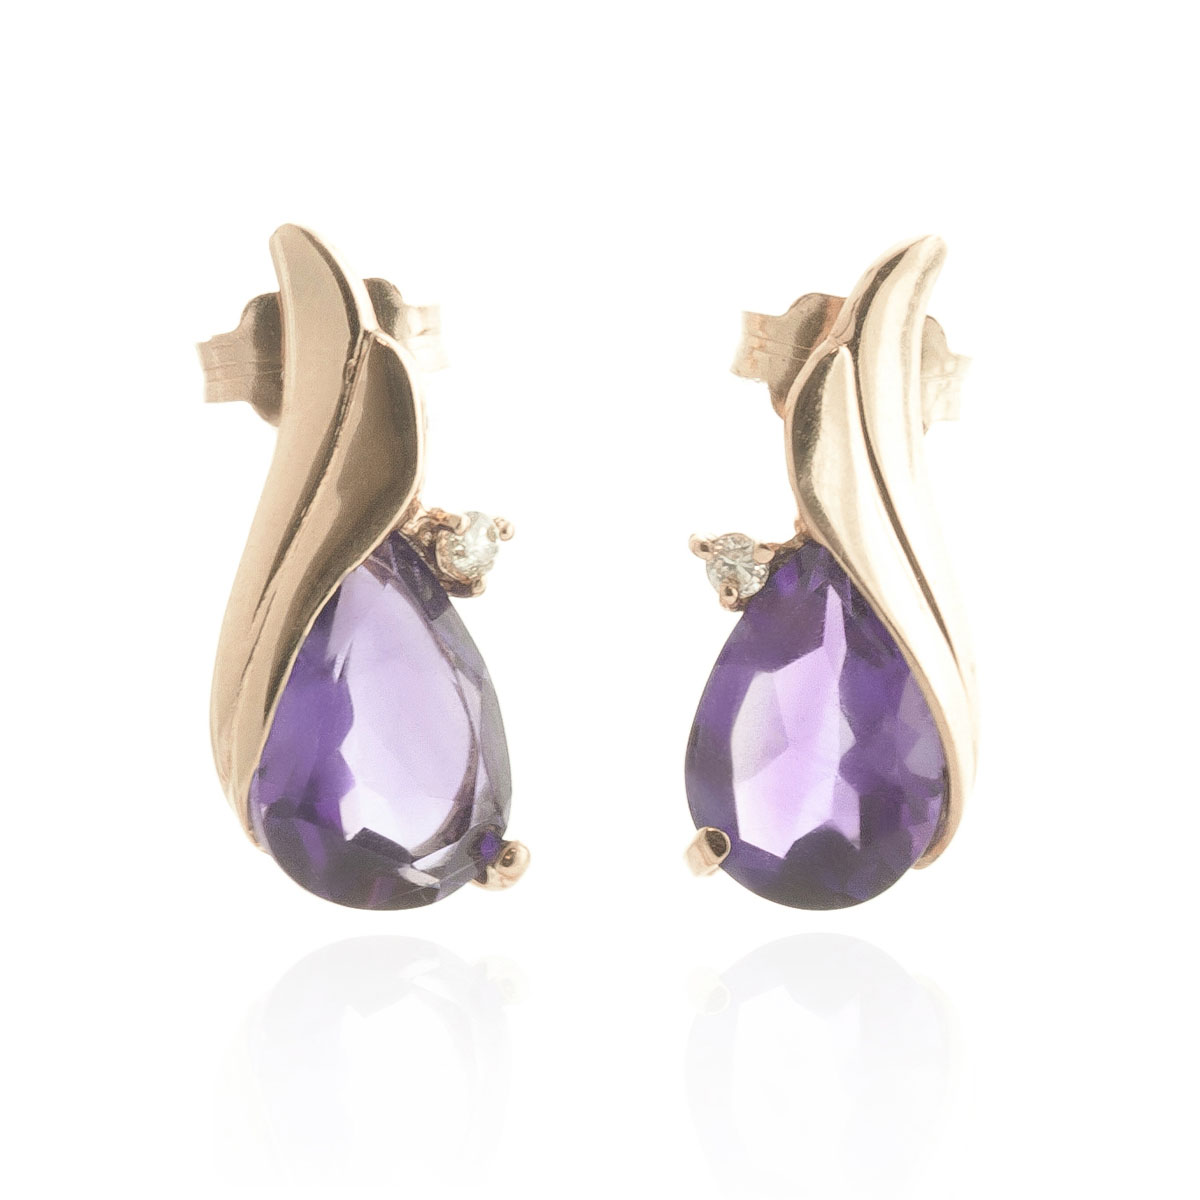 Amethyst Stud Earrings 3.16 ctw in 9ct Rose Gold